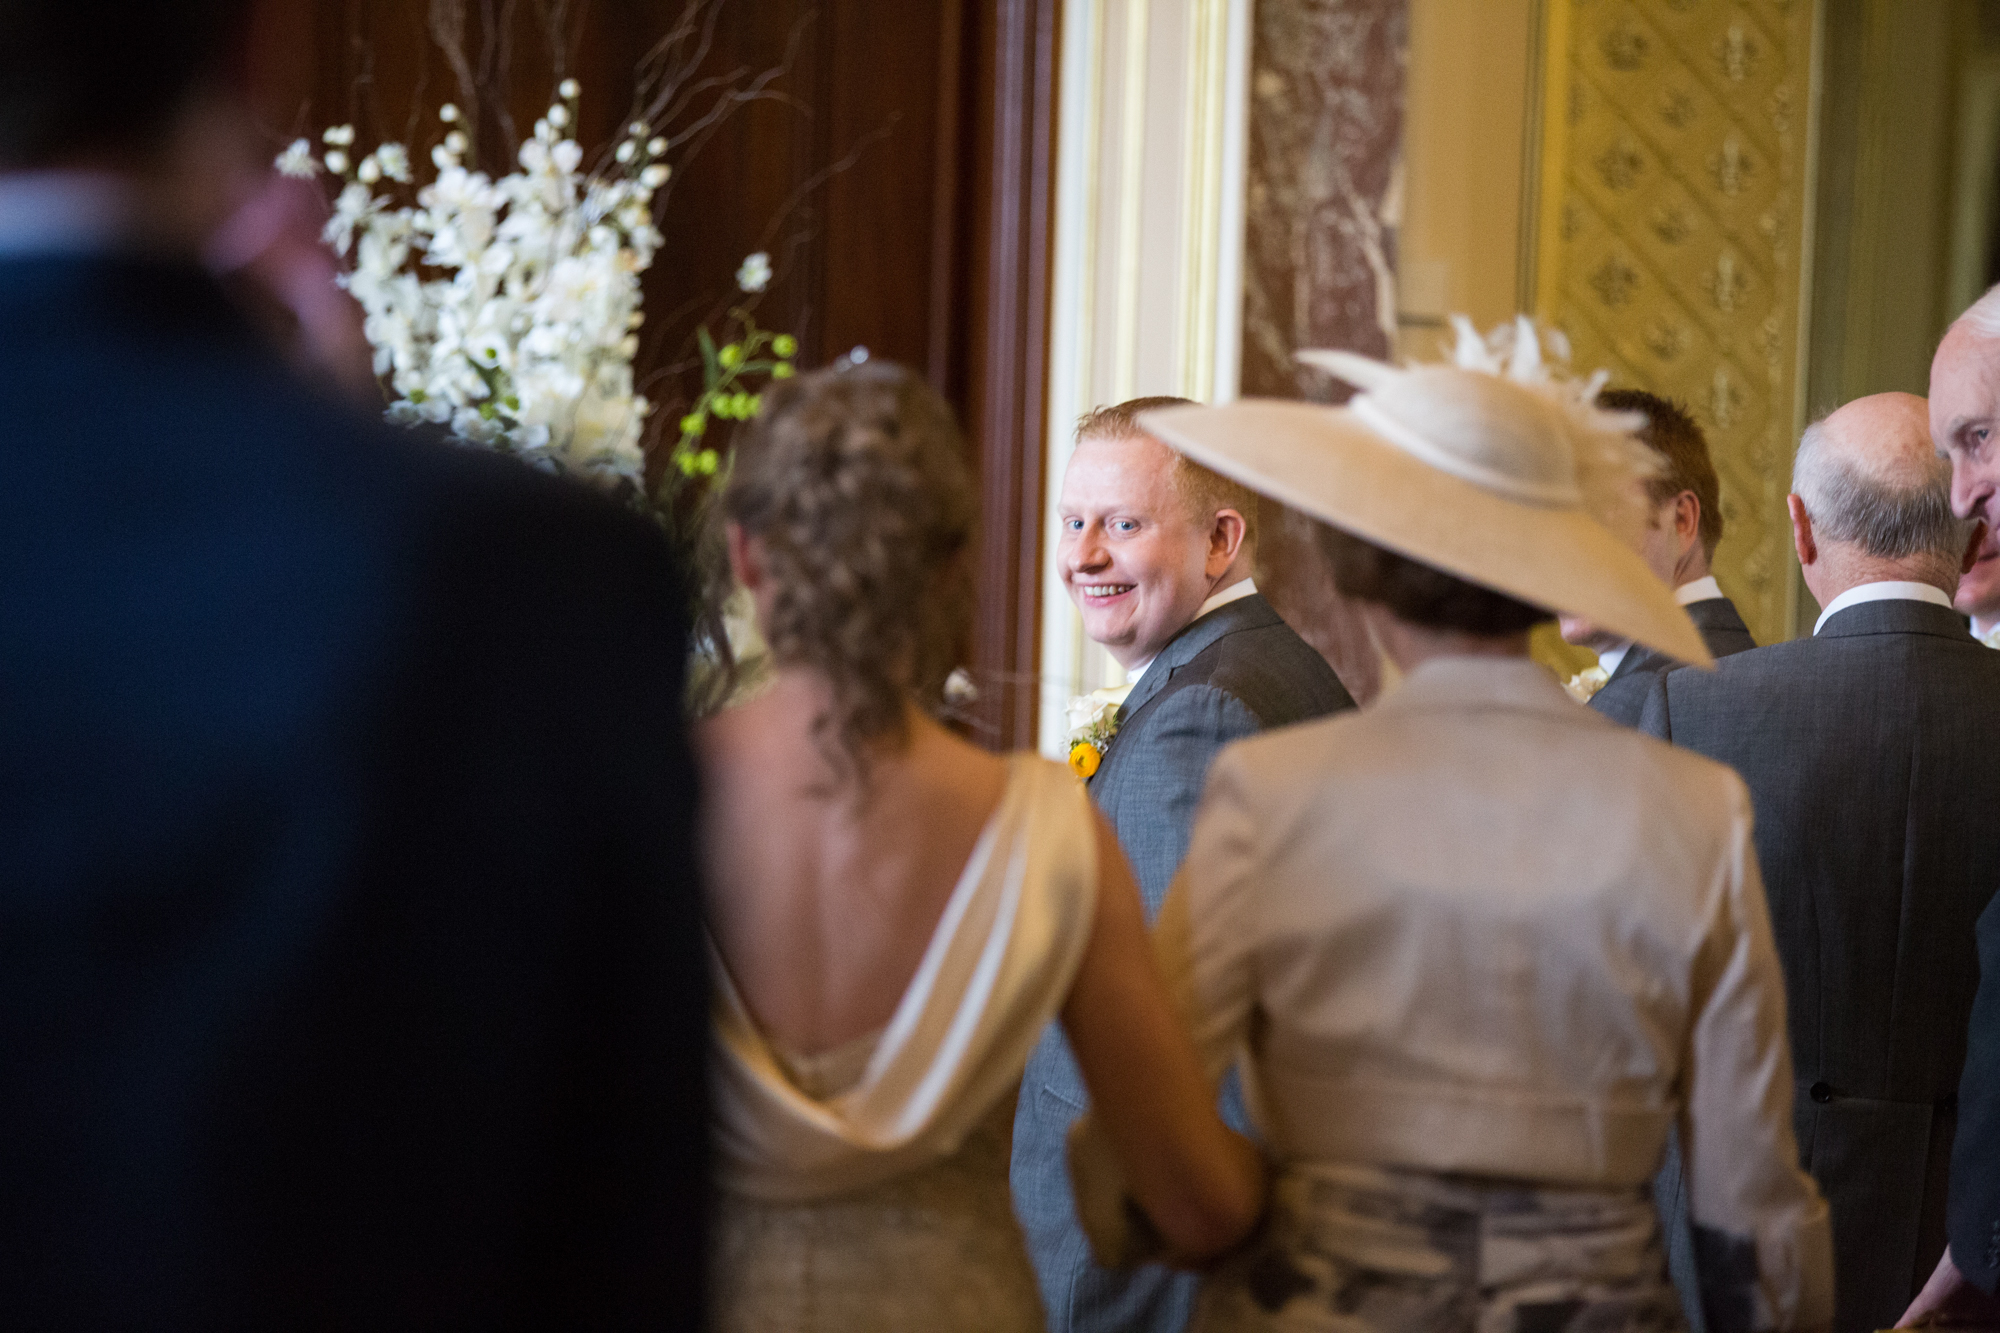 wynyard hall wedding photographer duncan mccall-1021.jpg